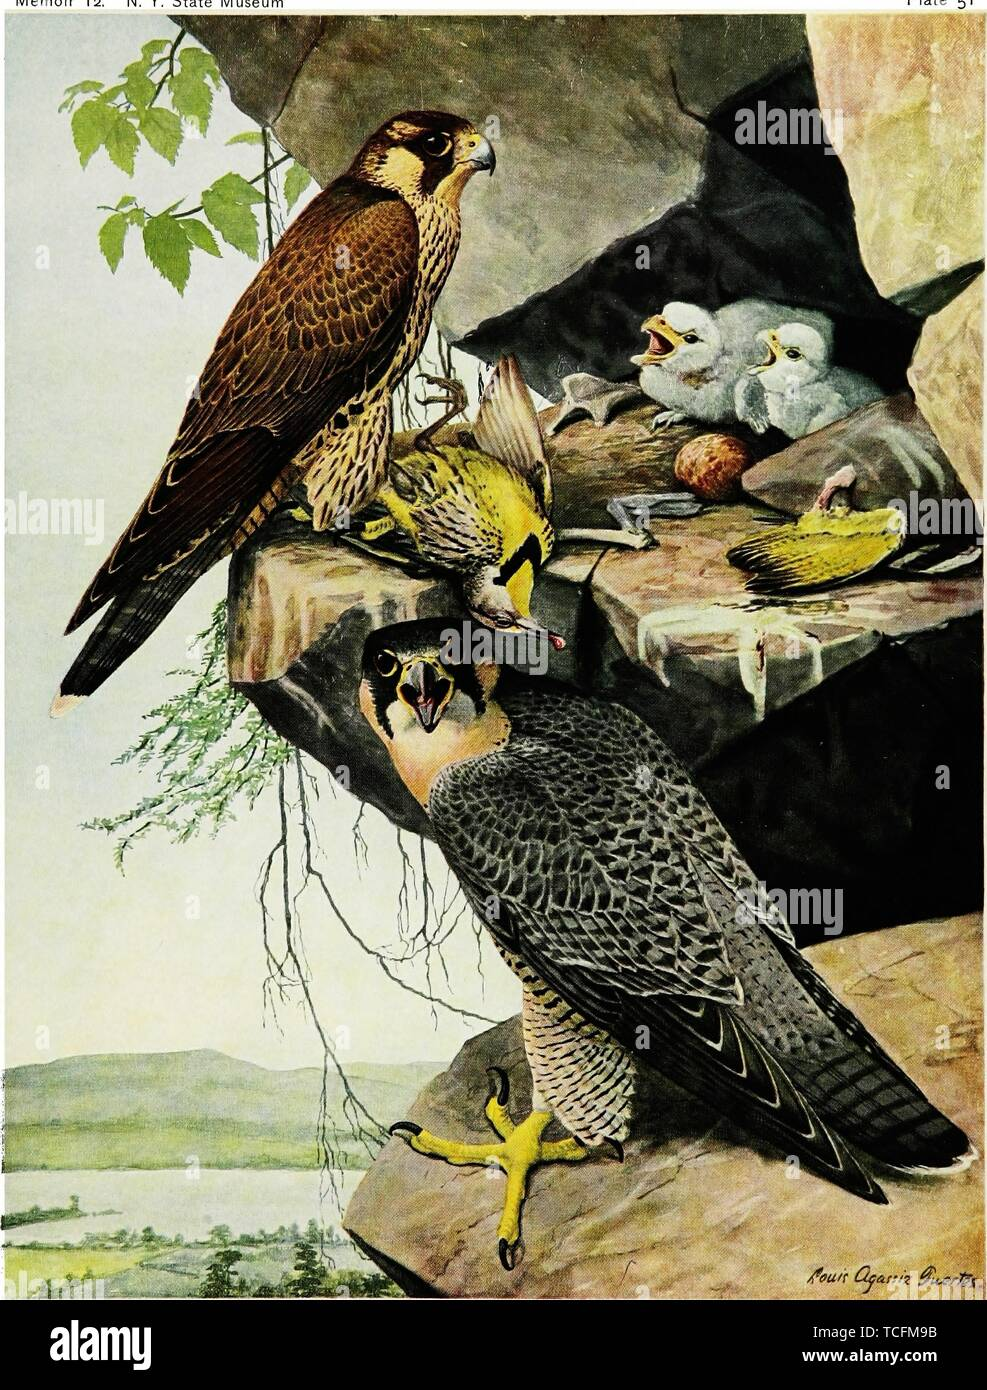 Engraved drawing of the Gyrfalcons (Falco rusticolus), from the book 'Birds of New York' by Elon Howard Eaton, 1914. Courtesy Internet Archive. () - Stock Image